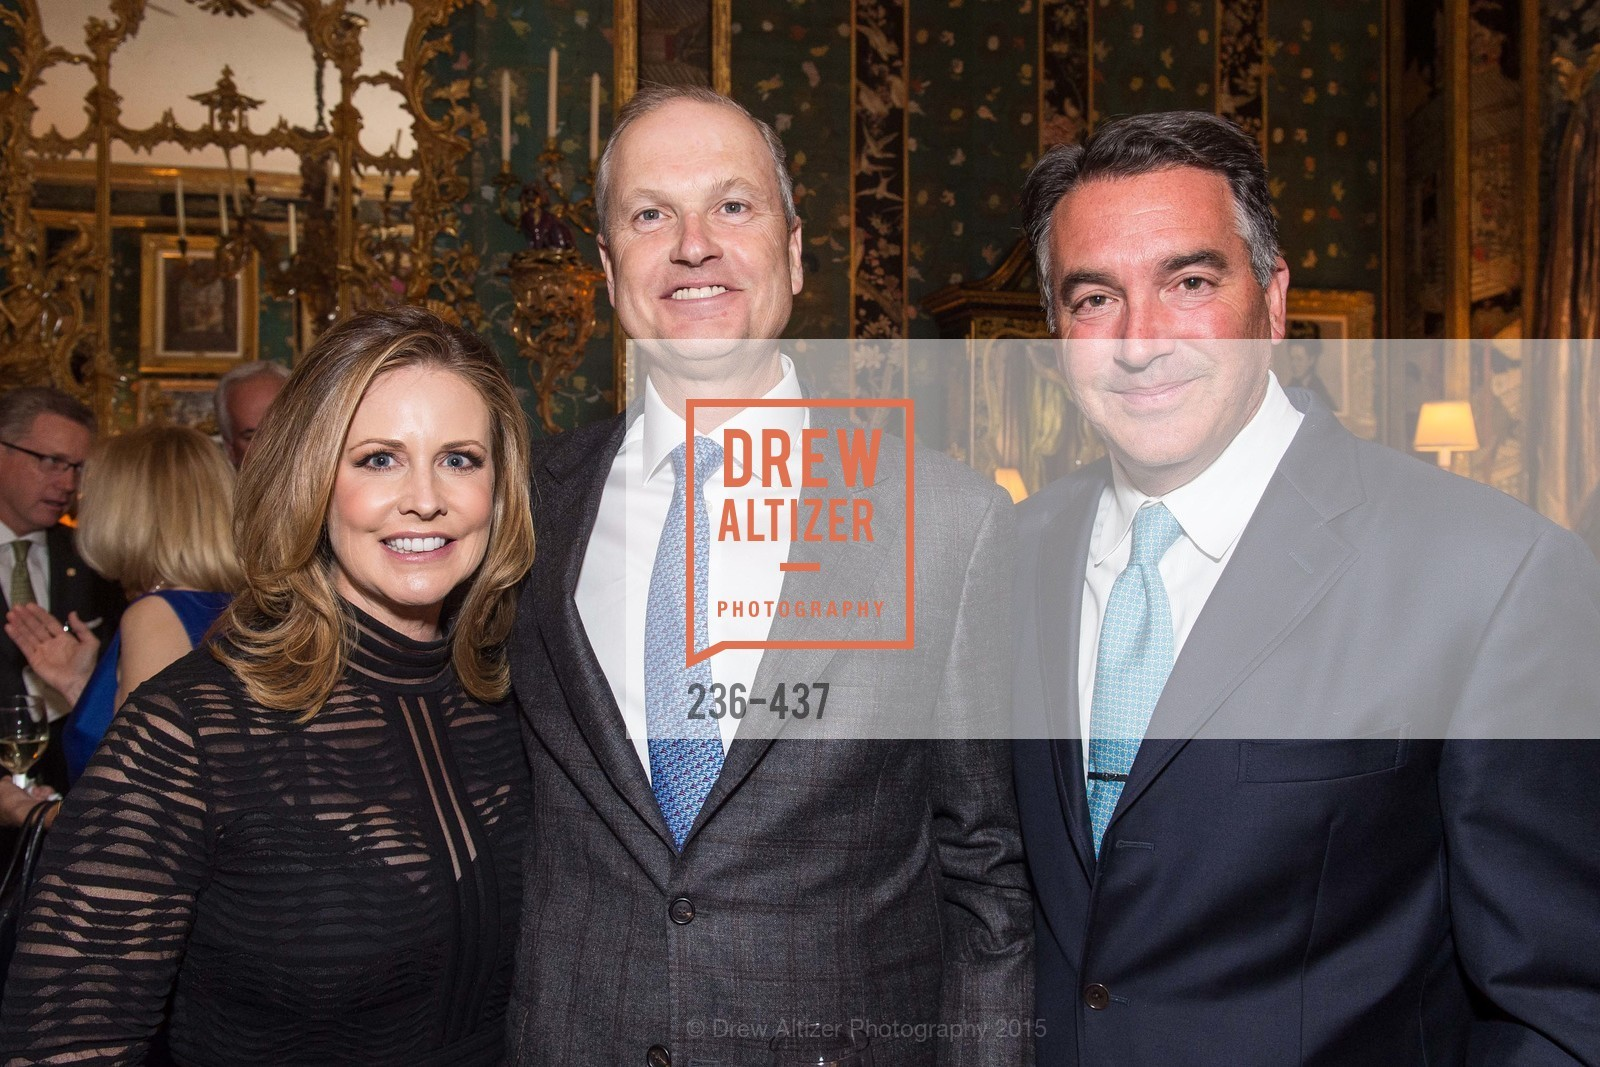 Maggie Oetgen, Steven Stull, Michael Polenske, FDS Vintner Reception and Dinner, Private Residence, November 4th, 2015,Drew Altizer, Drew Altizer Photography, full-service agency, private events, San Francisco photographer, photographer california